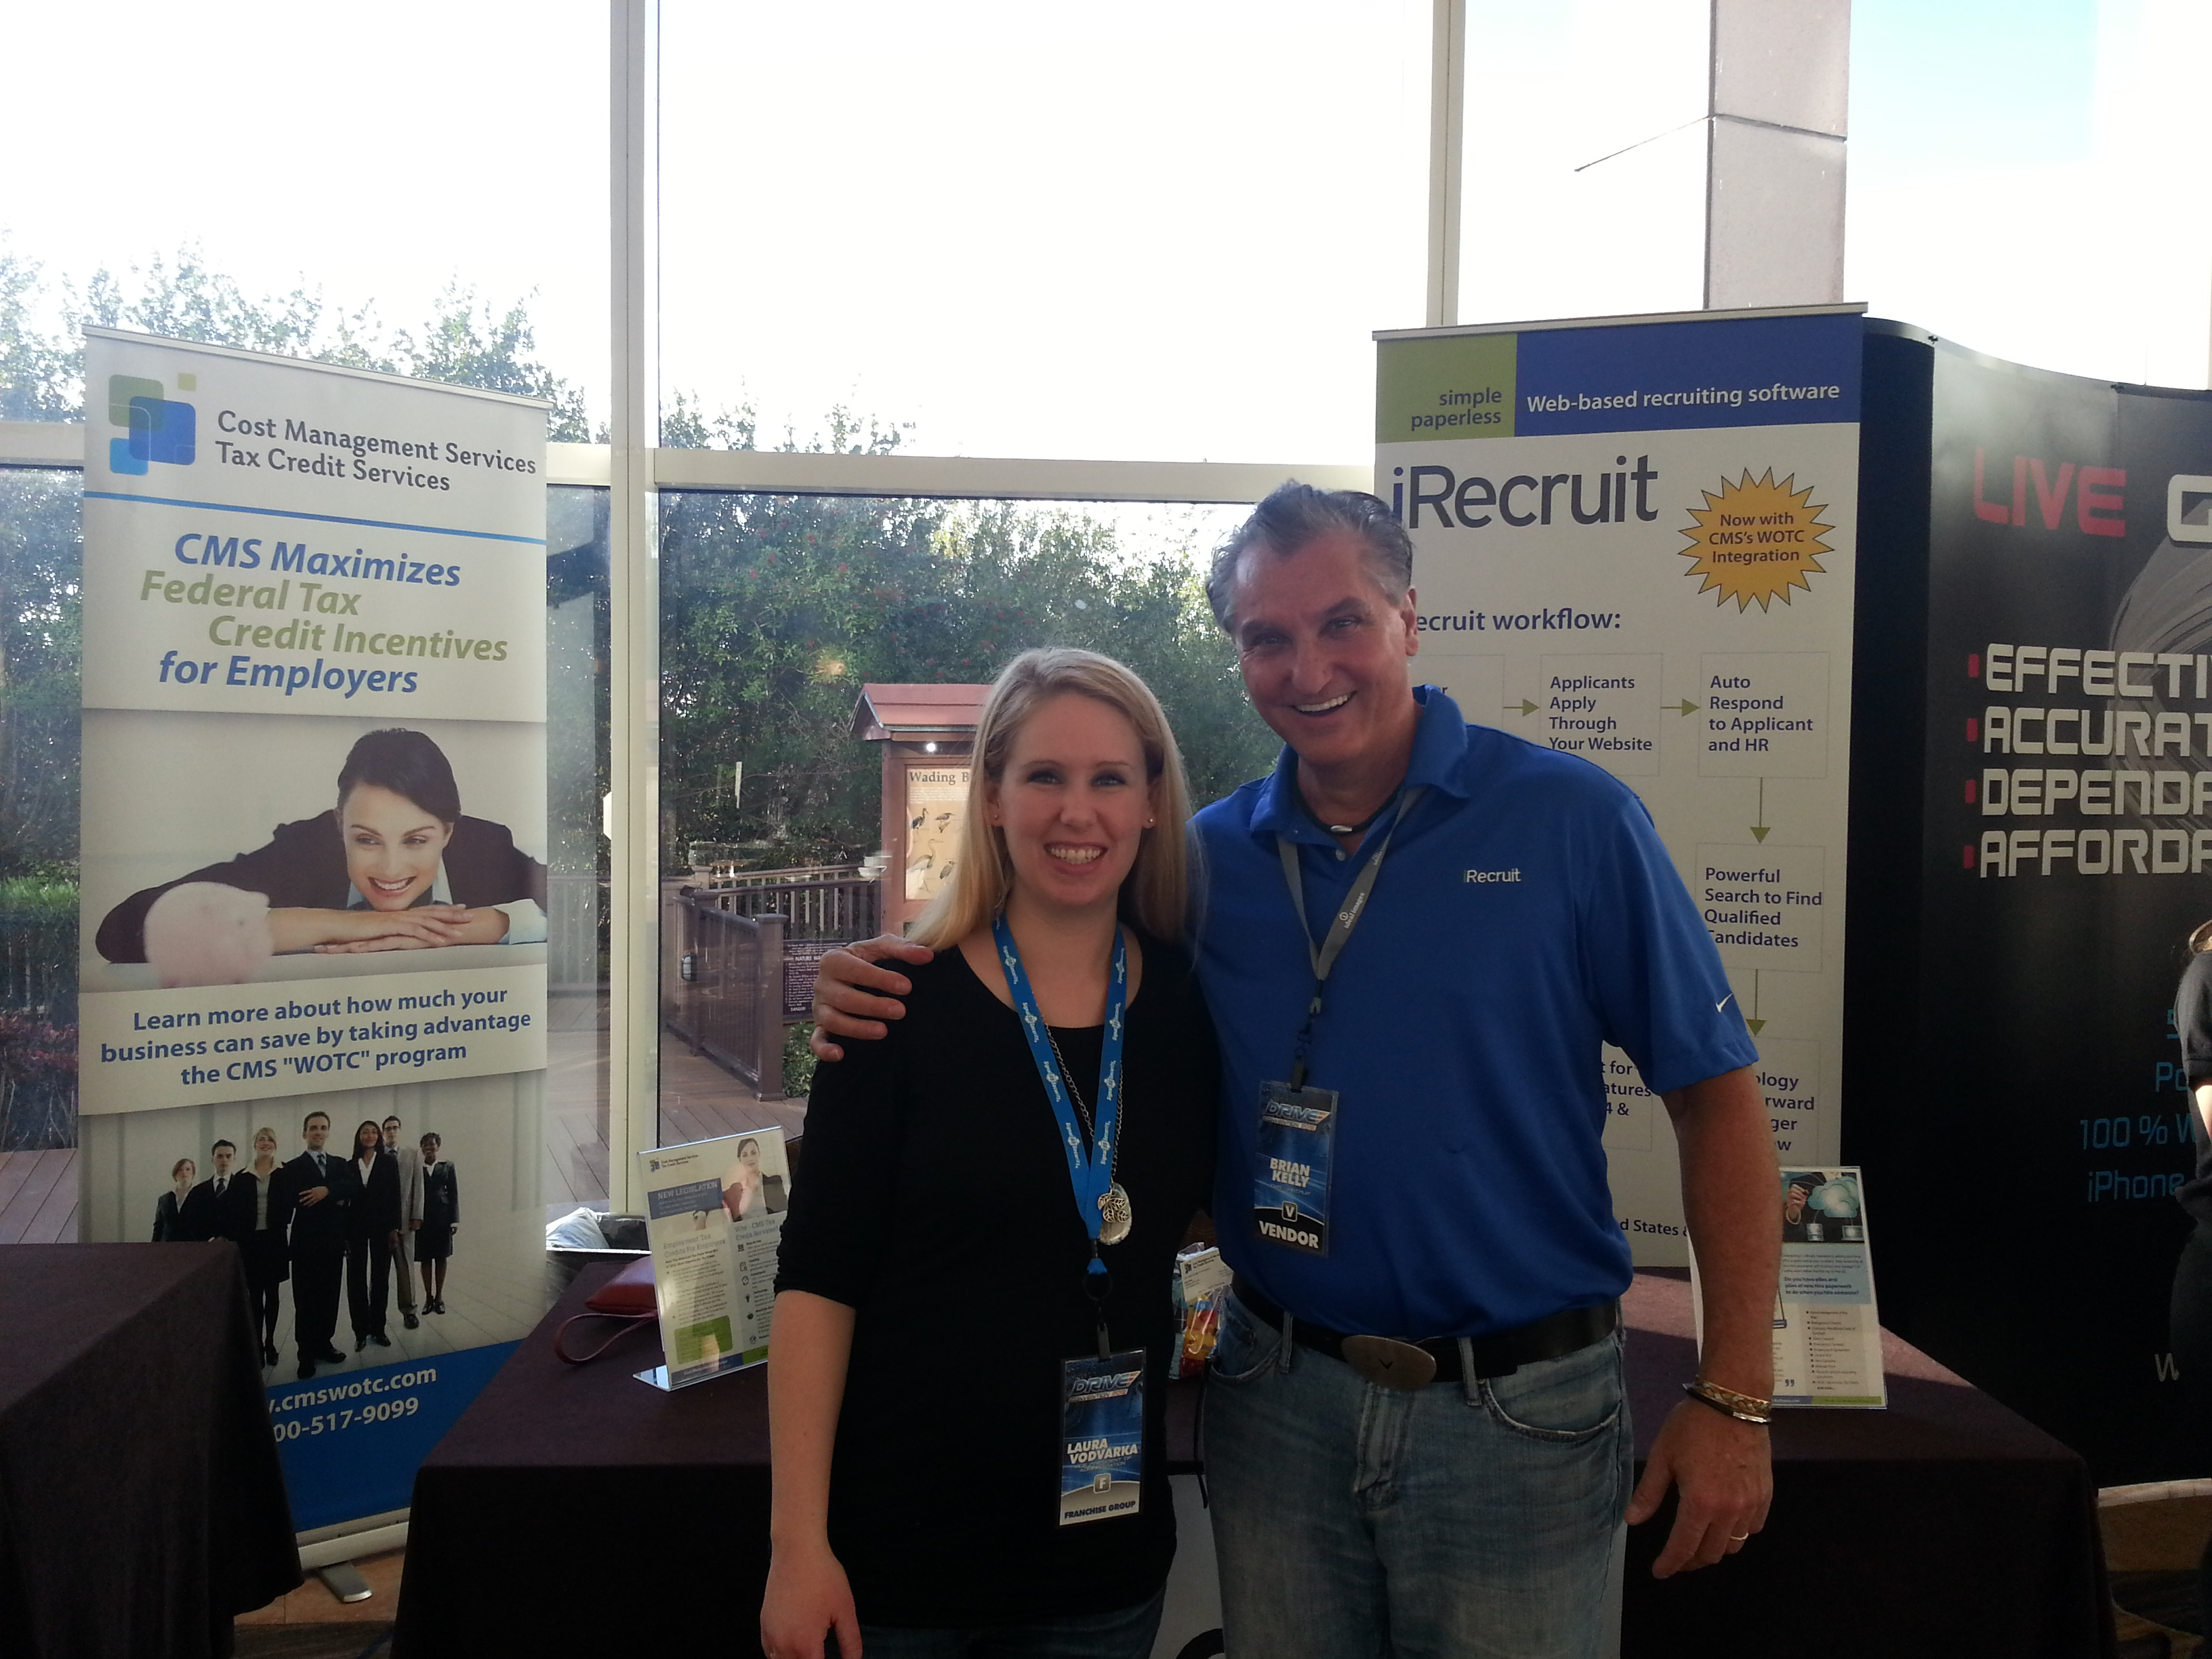 Brian Kelly of CMS, meets Laura Vodvarka, Vice President of Administration at Signal 88 Security